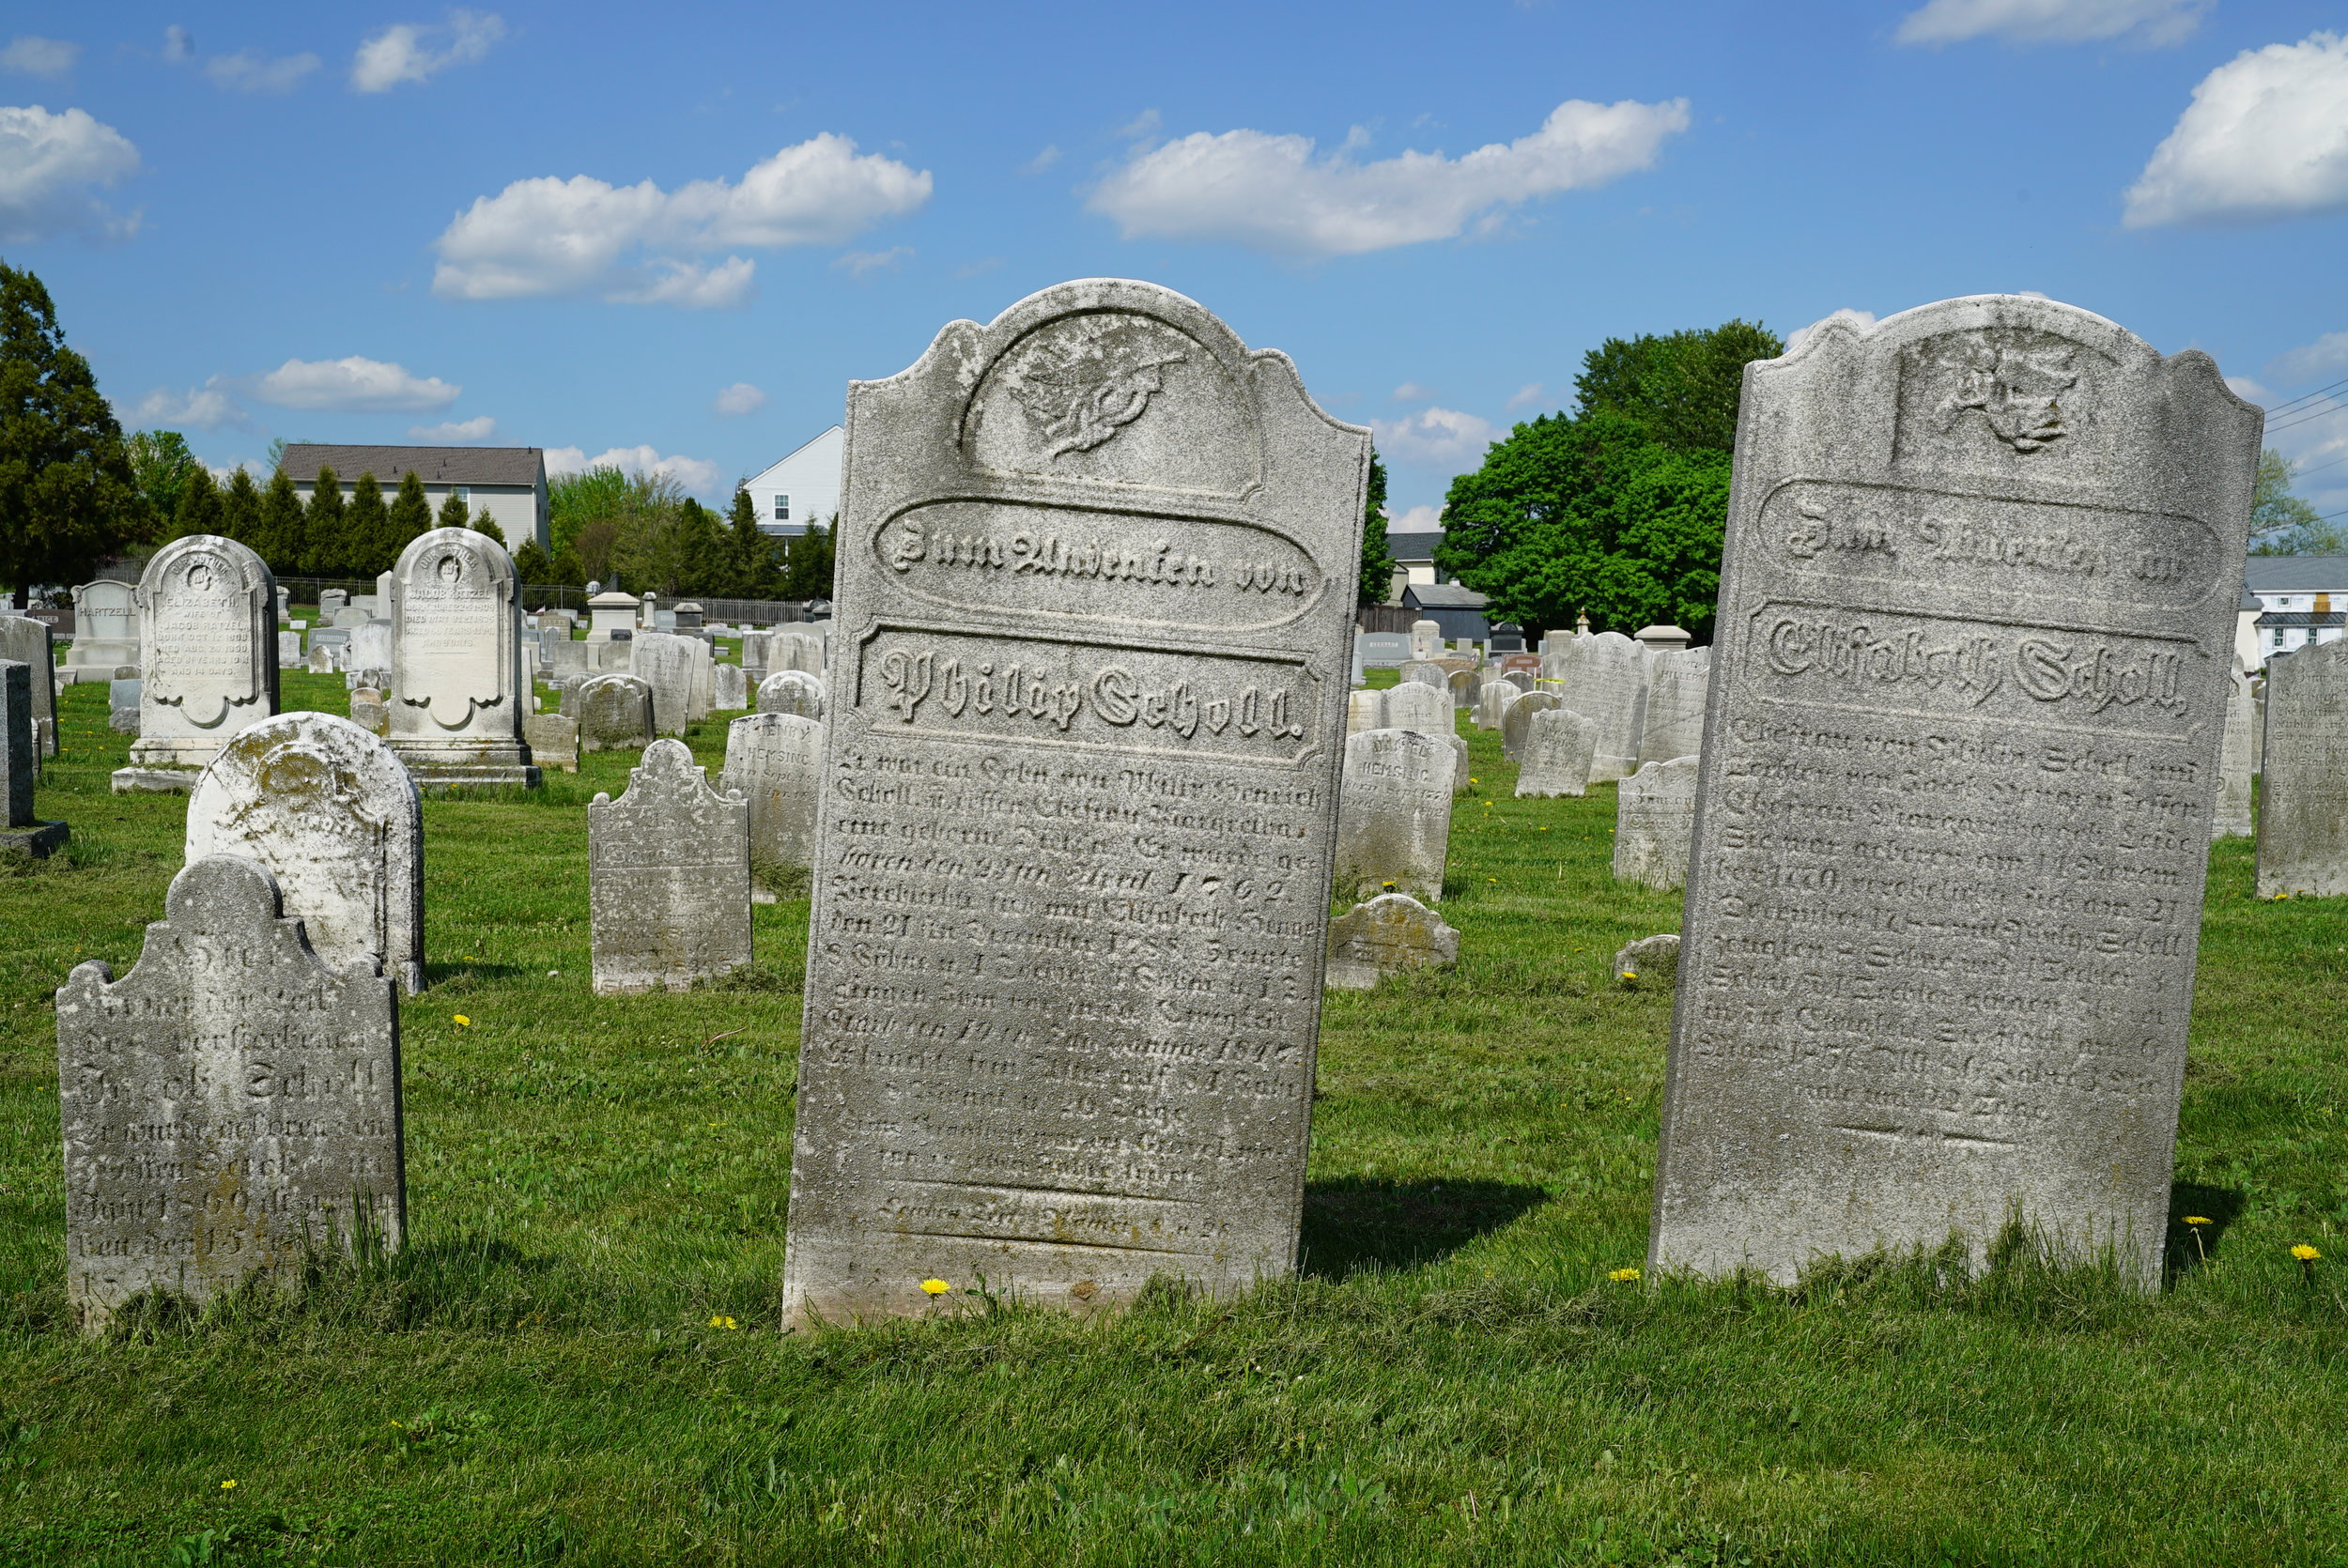 Ancient tombstones can be found at Christ Reformed Church At Indian Creek Cemetery. Telford, Pennsylvania.